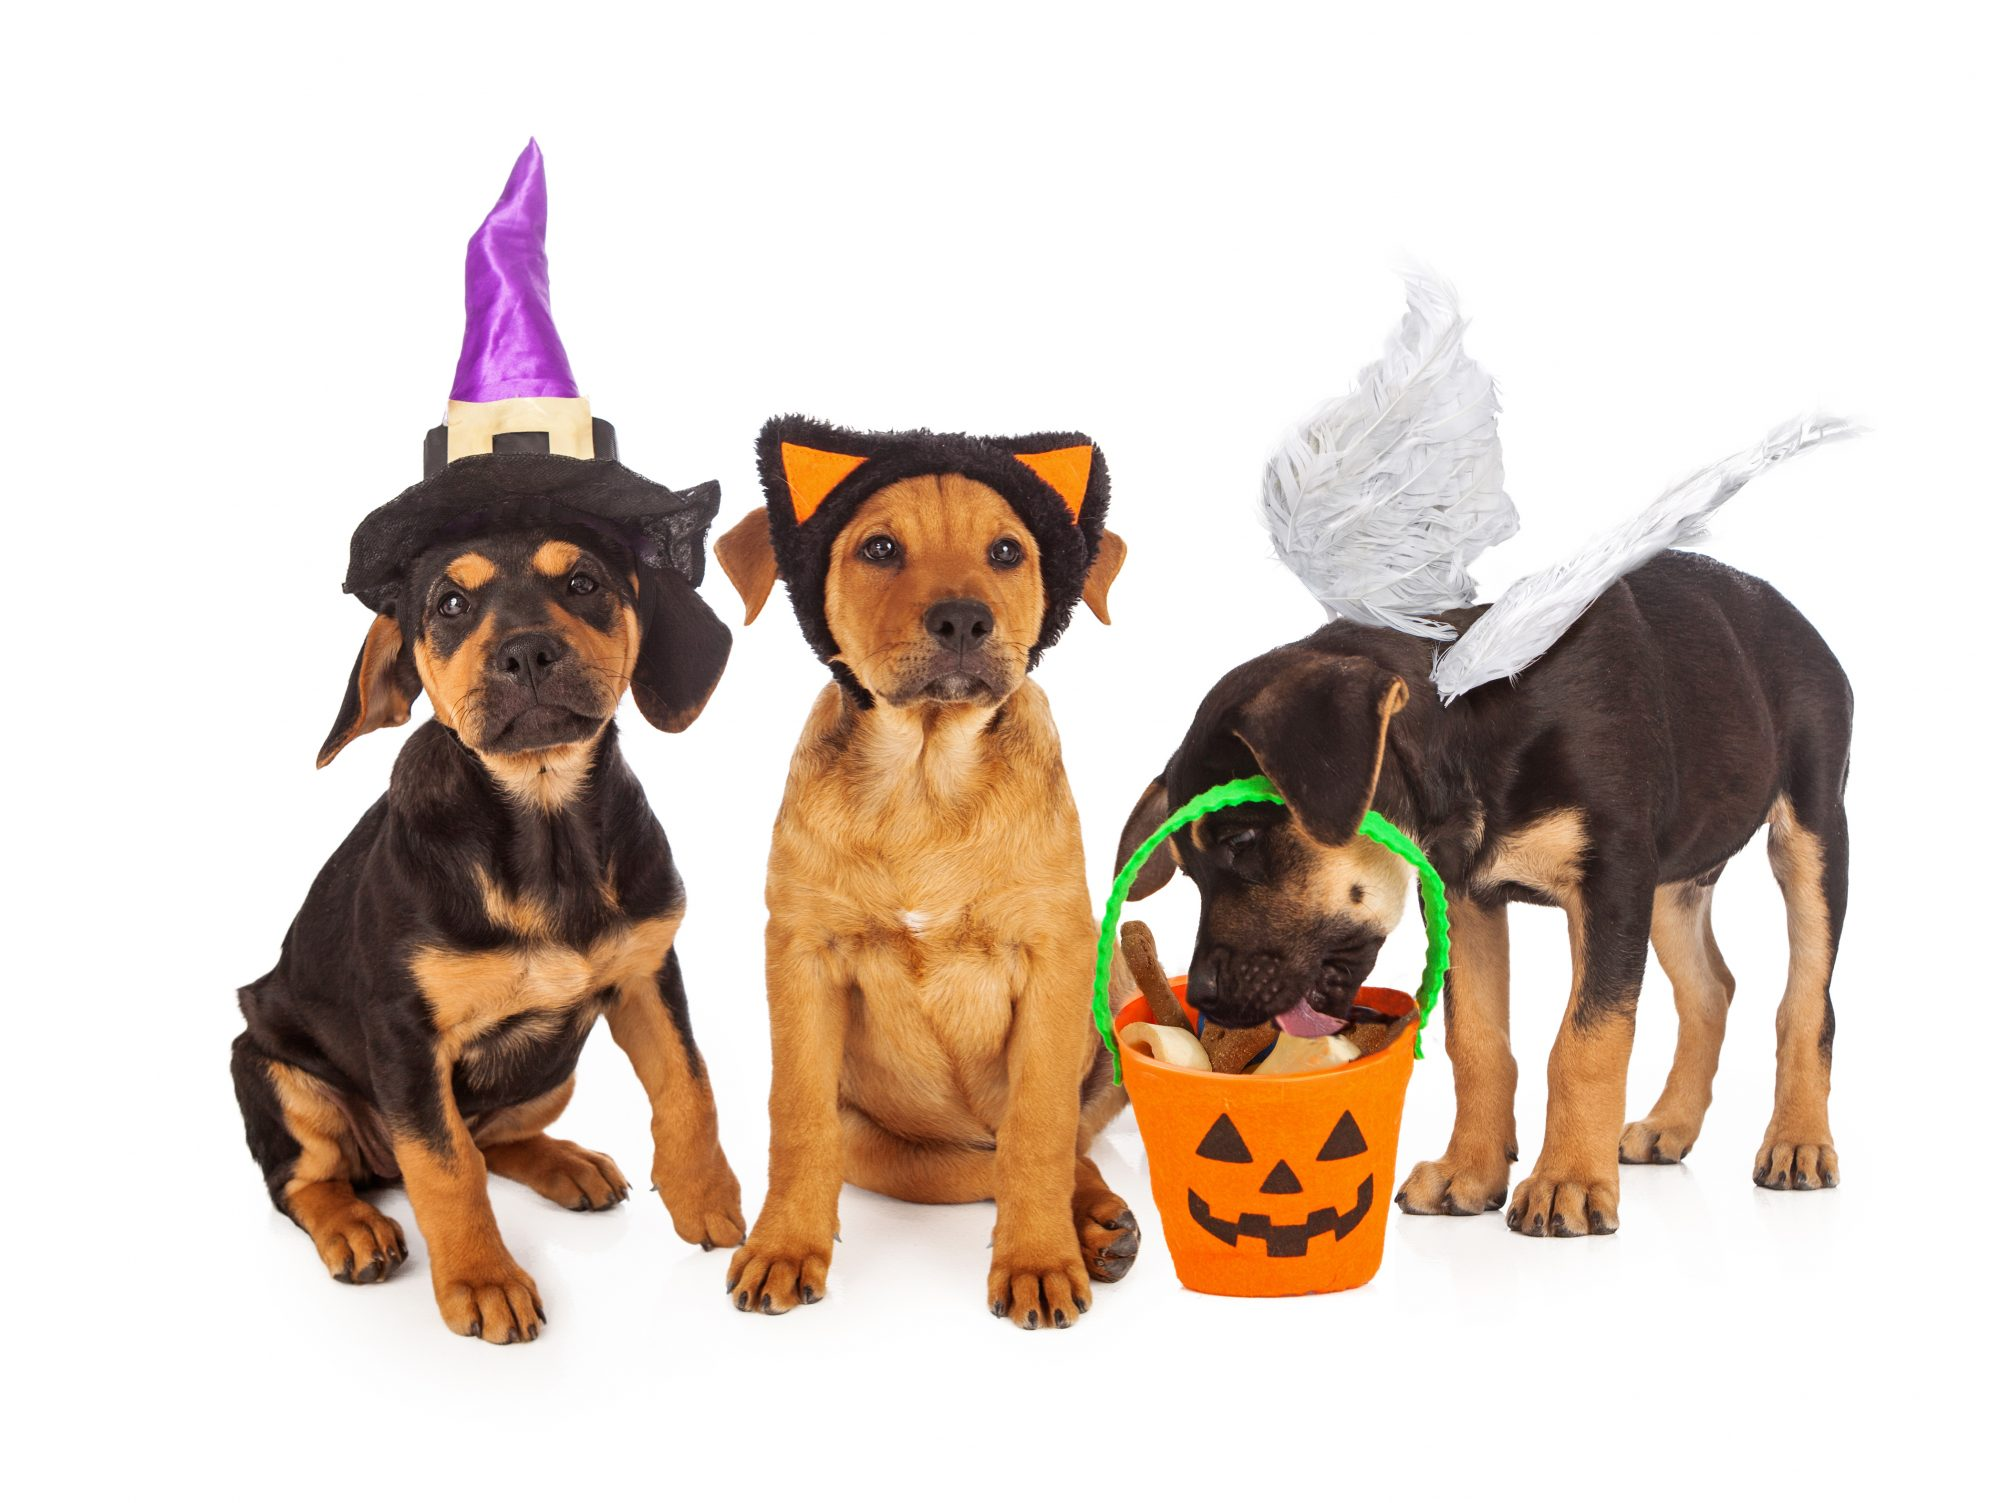 3 dogs dressed in costume for halloween